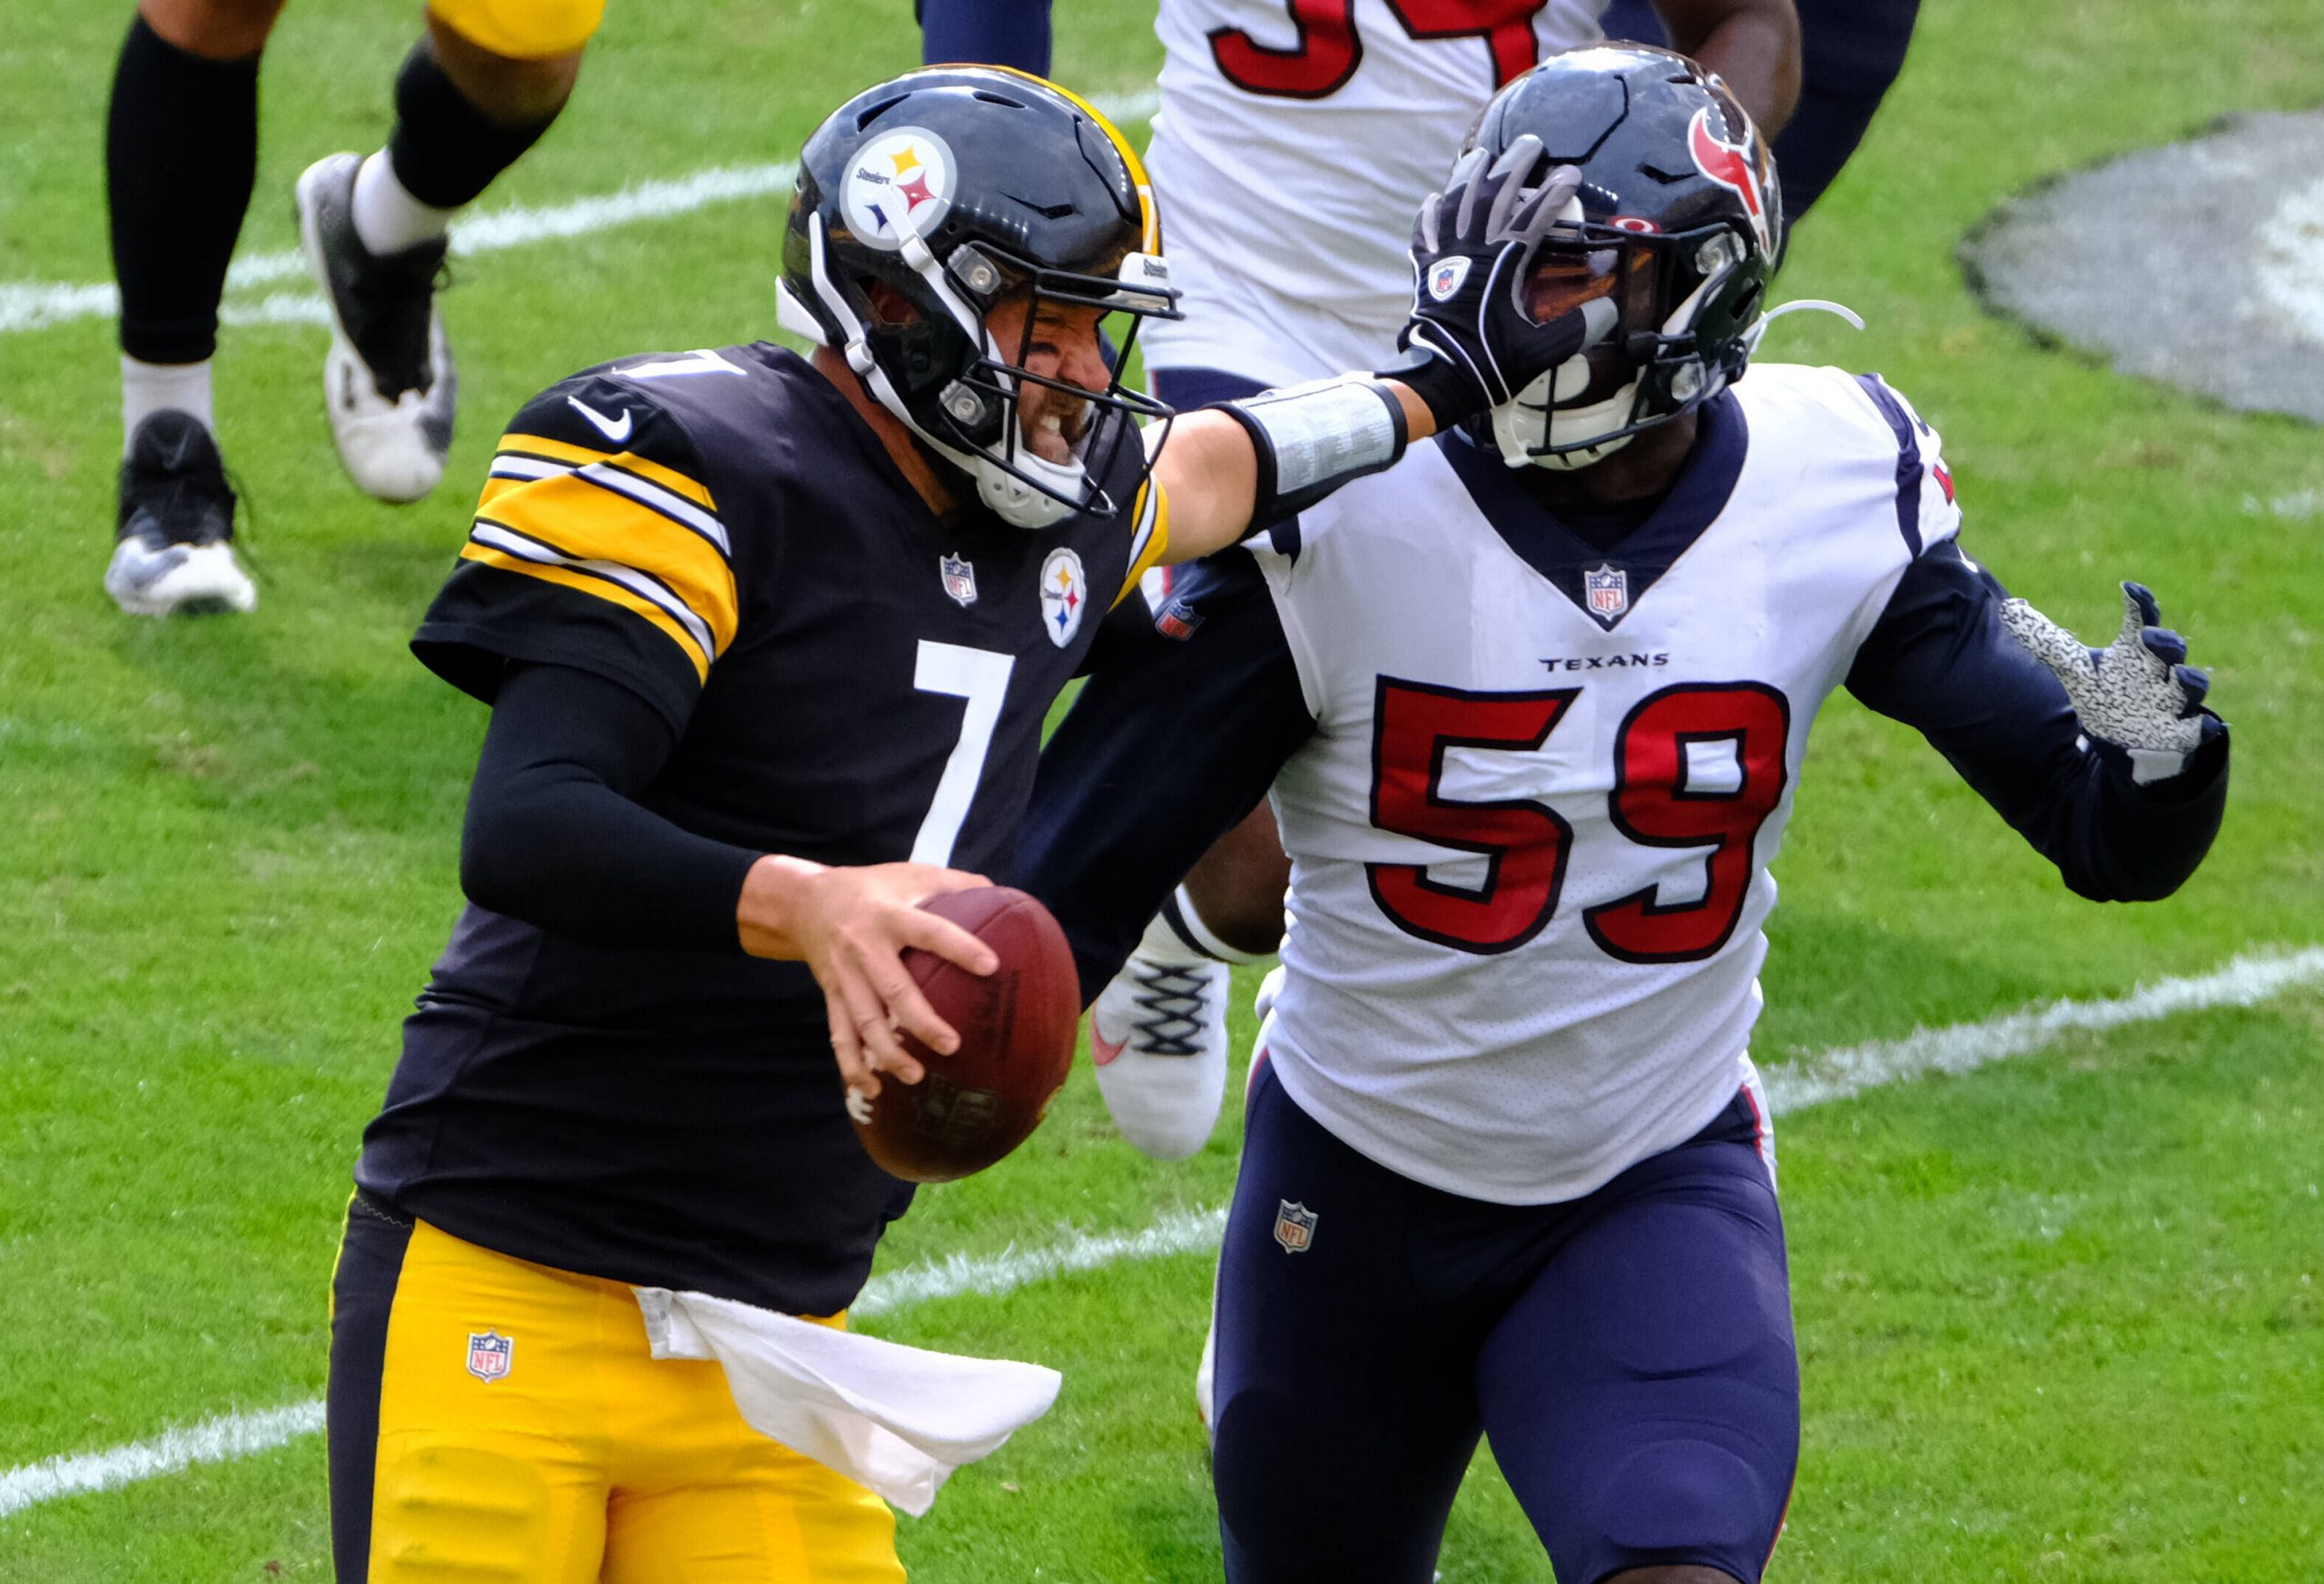 September 27th, 2020: Ben Roethlisberger 7 during the Pittsburgh Steelers vs Houston Texans game at Heinz Field in Pitt